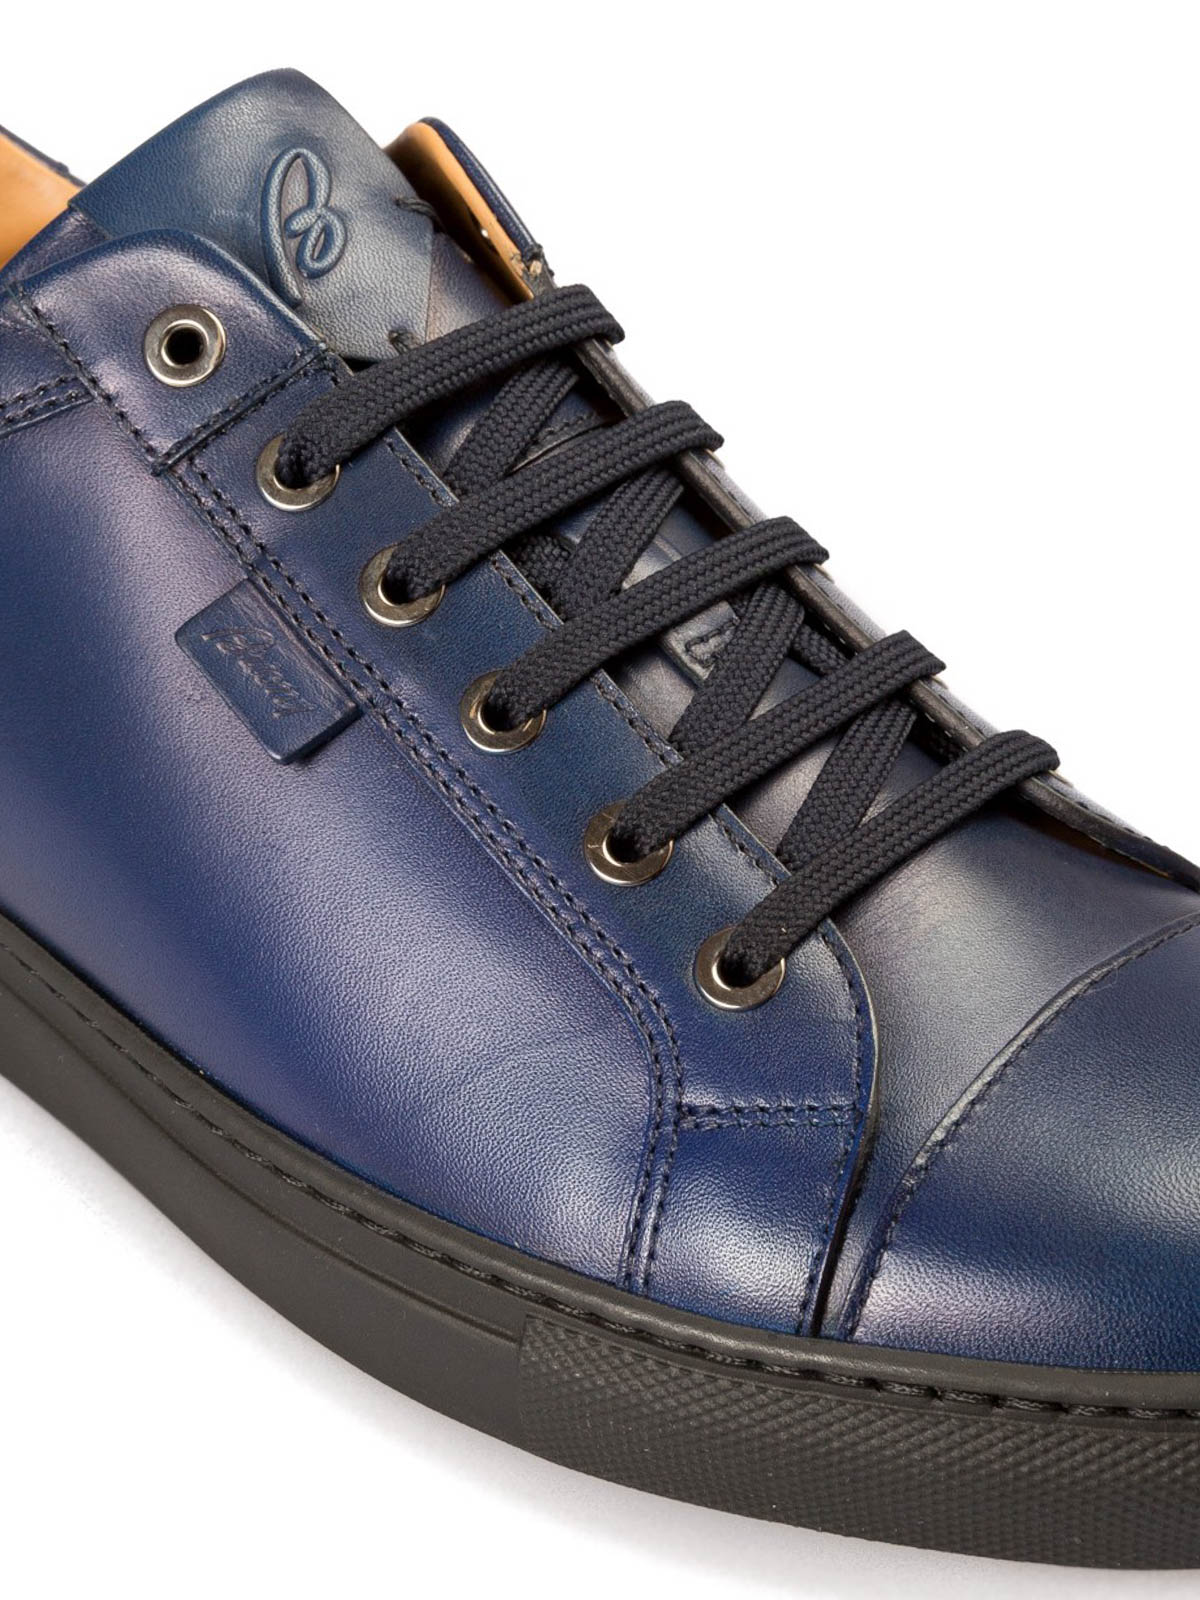 Brioni - Blue leather low top sneakers